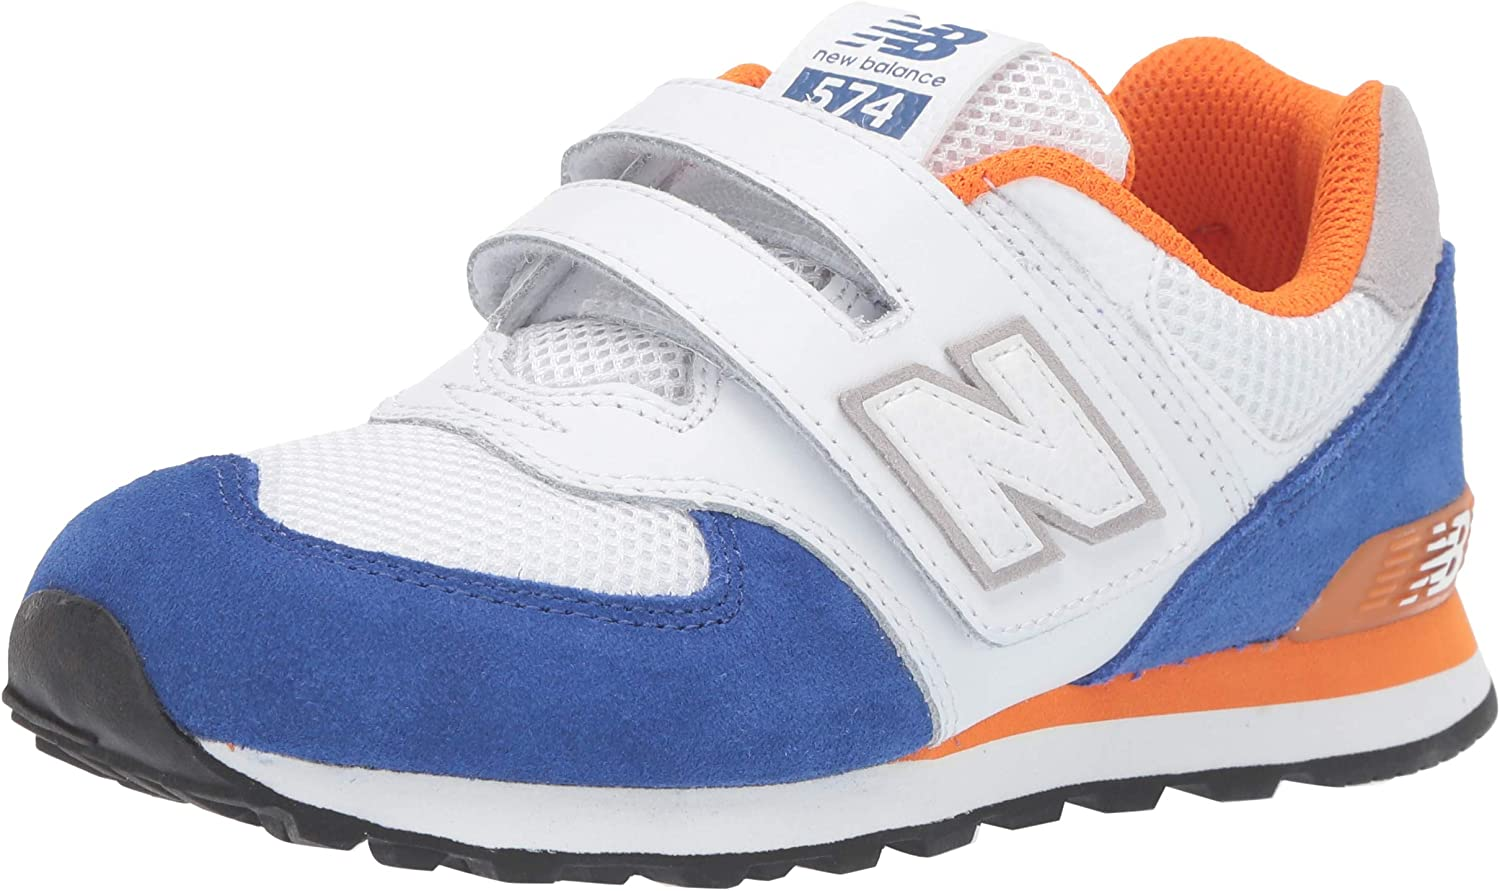 New Balance Kids' Max 47% OFF 574 Sneaker 1 year warranty V1 Leather